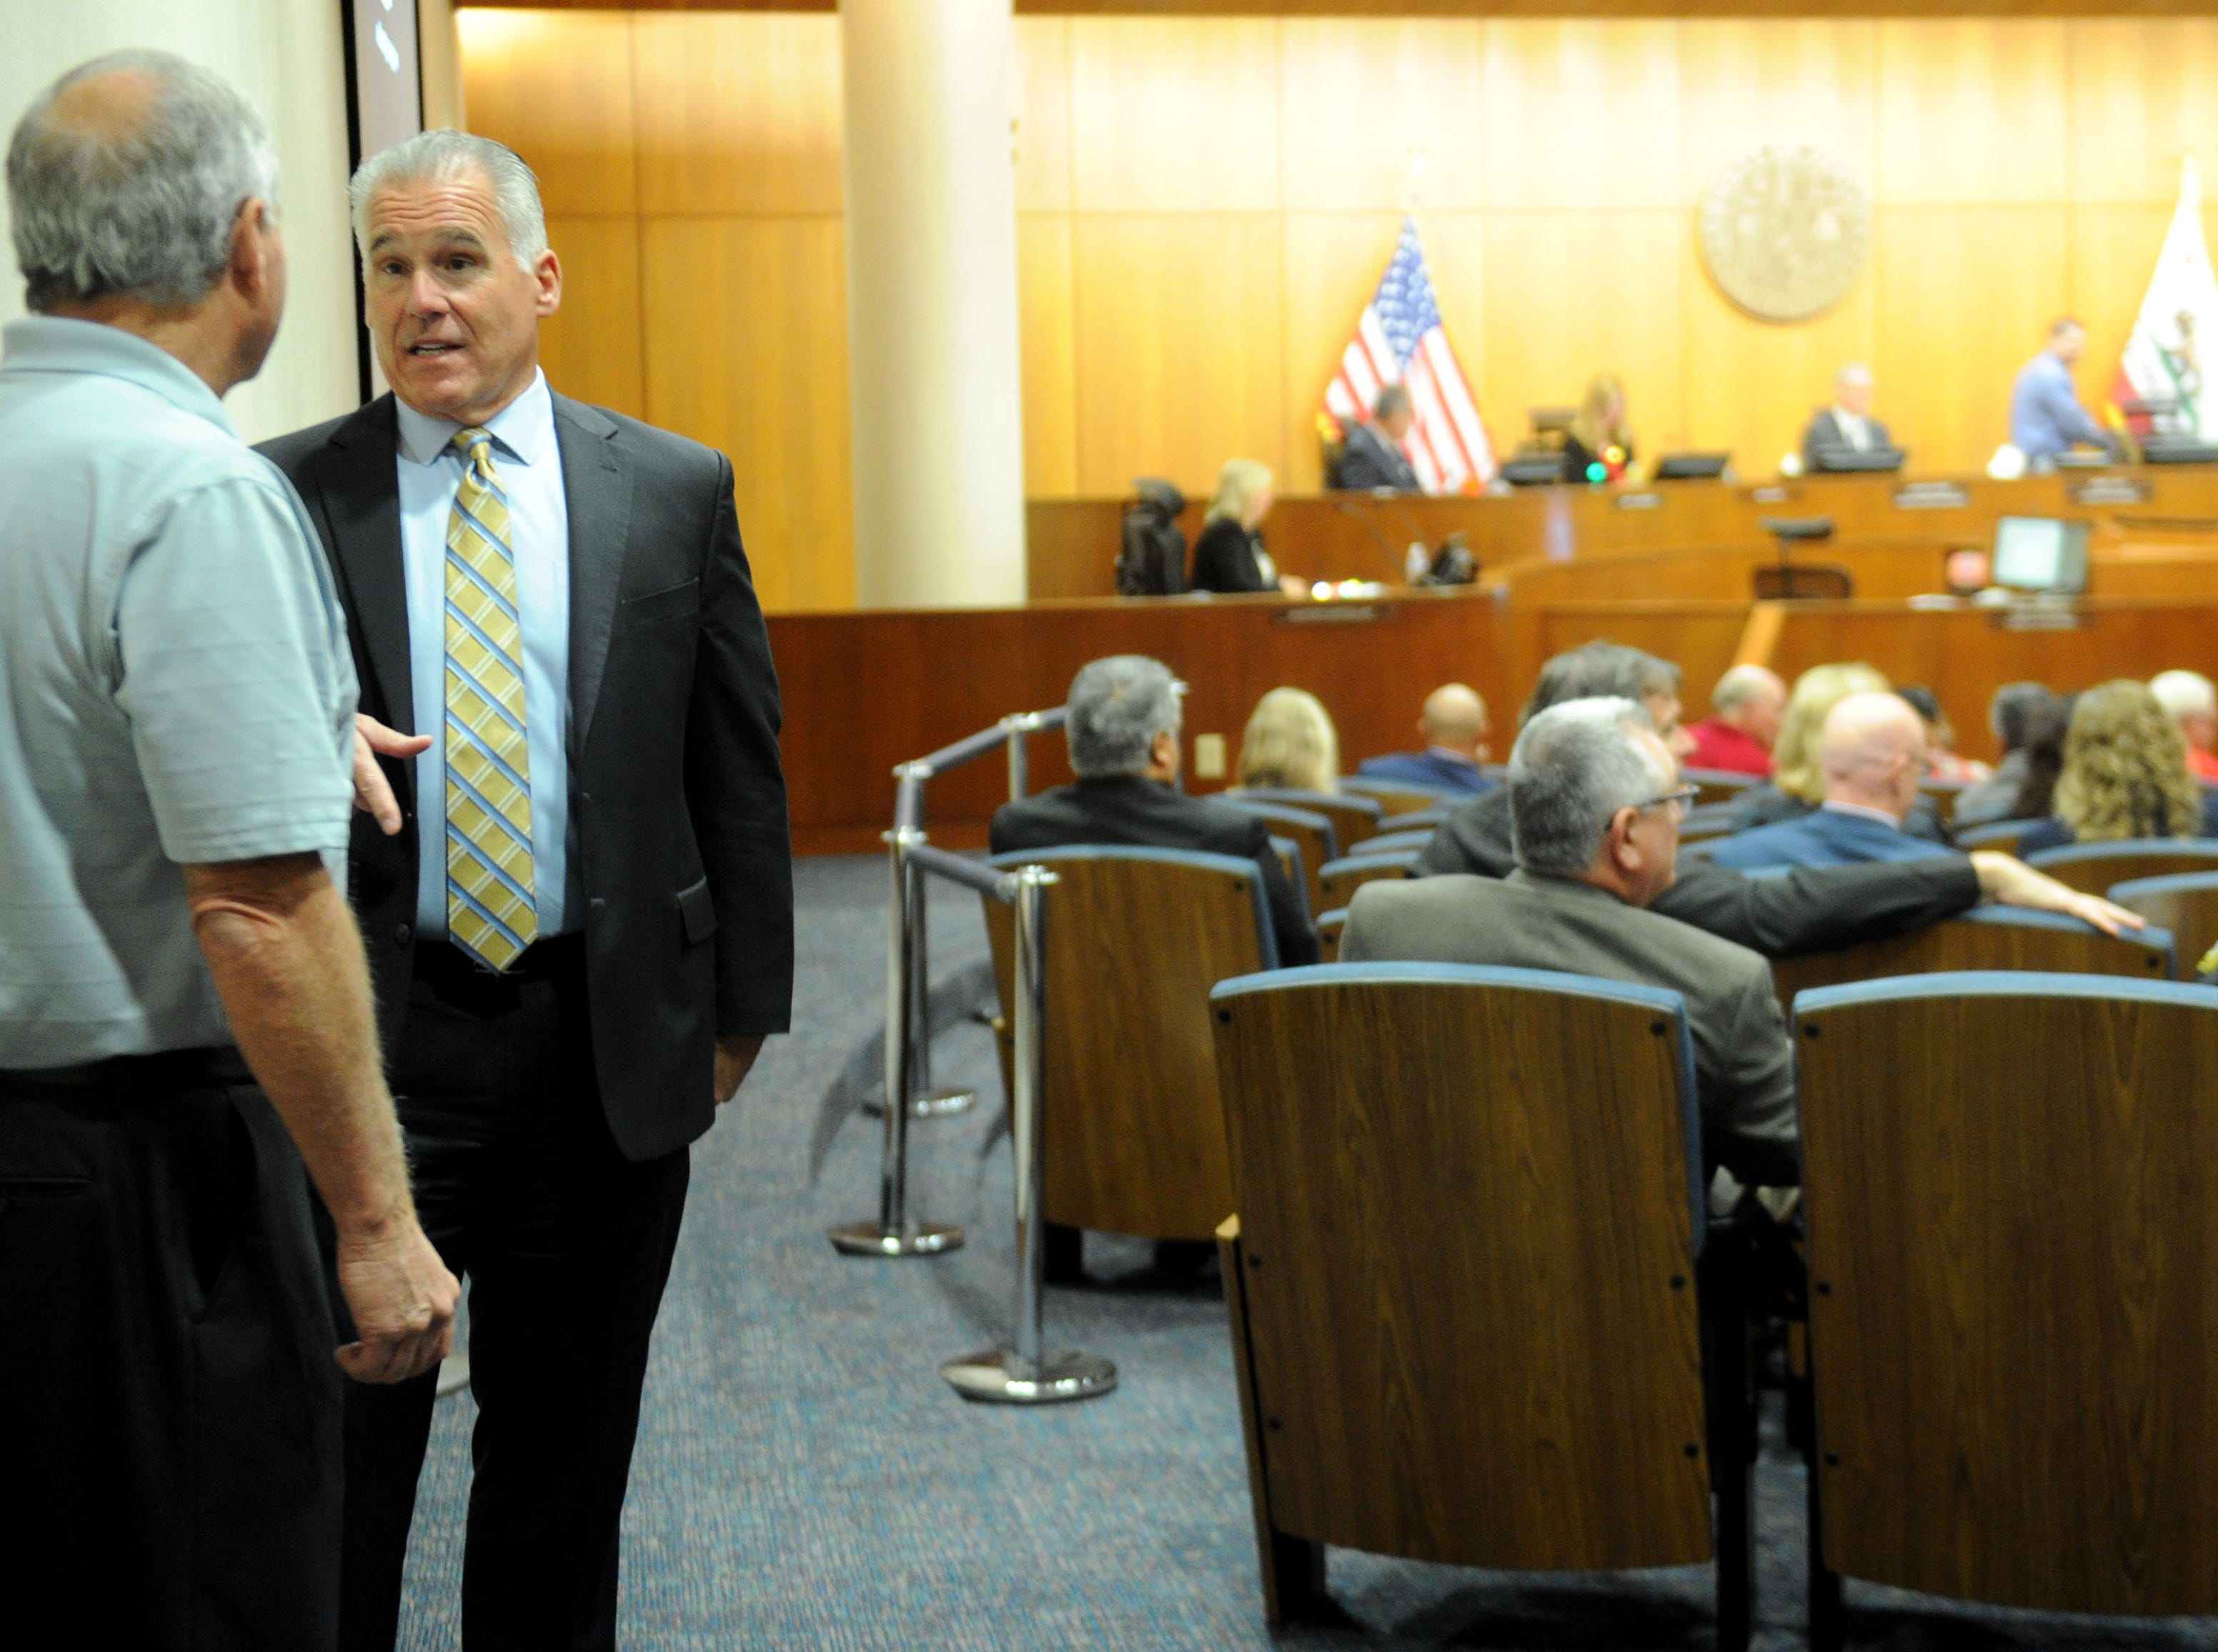 Ventura County Taxpayers Association President David Grau talks with Supervisor Peter Foy before his last meeting as a member of the Board of Supervisors.